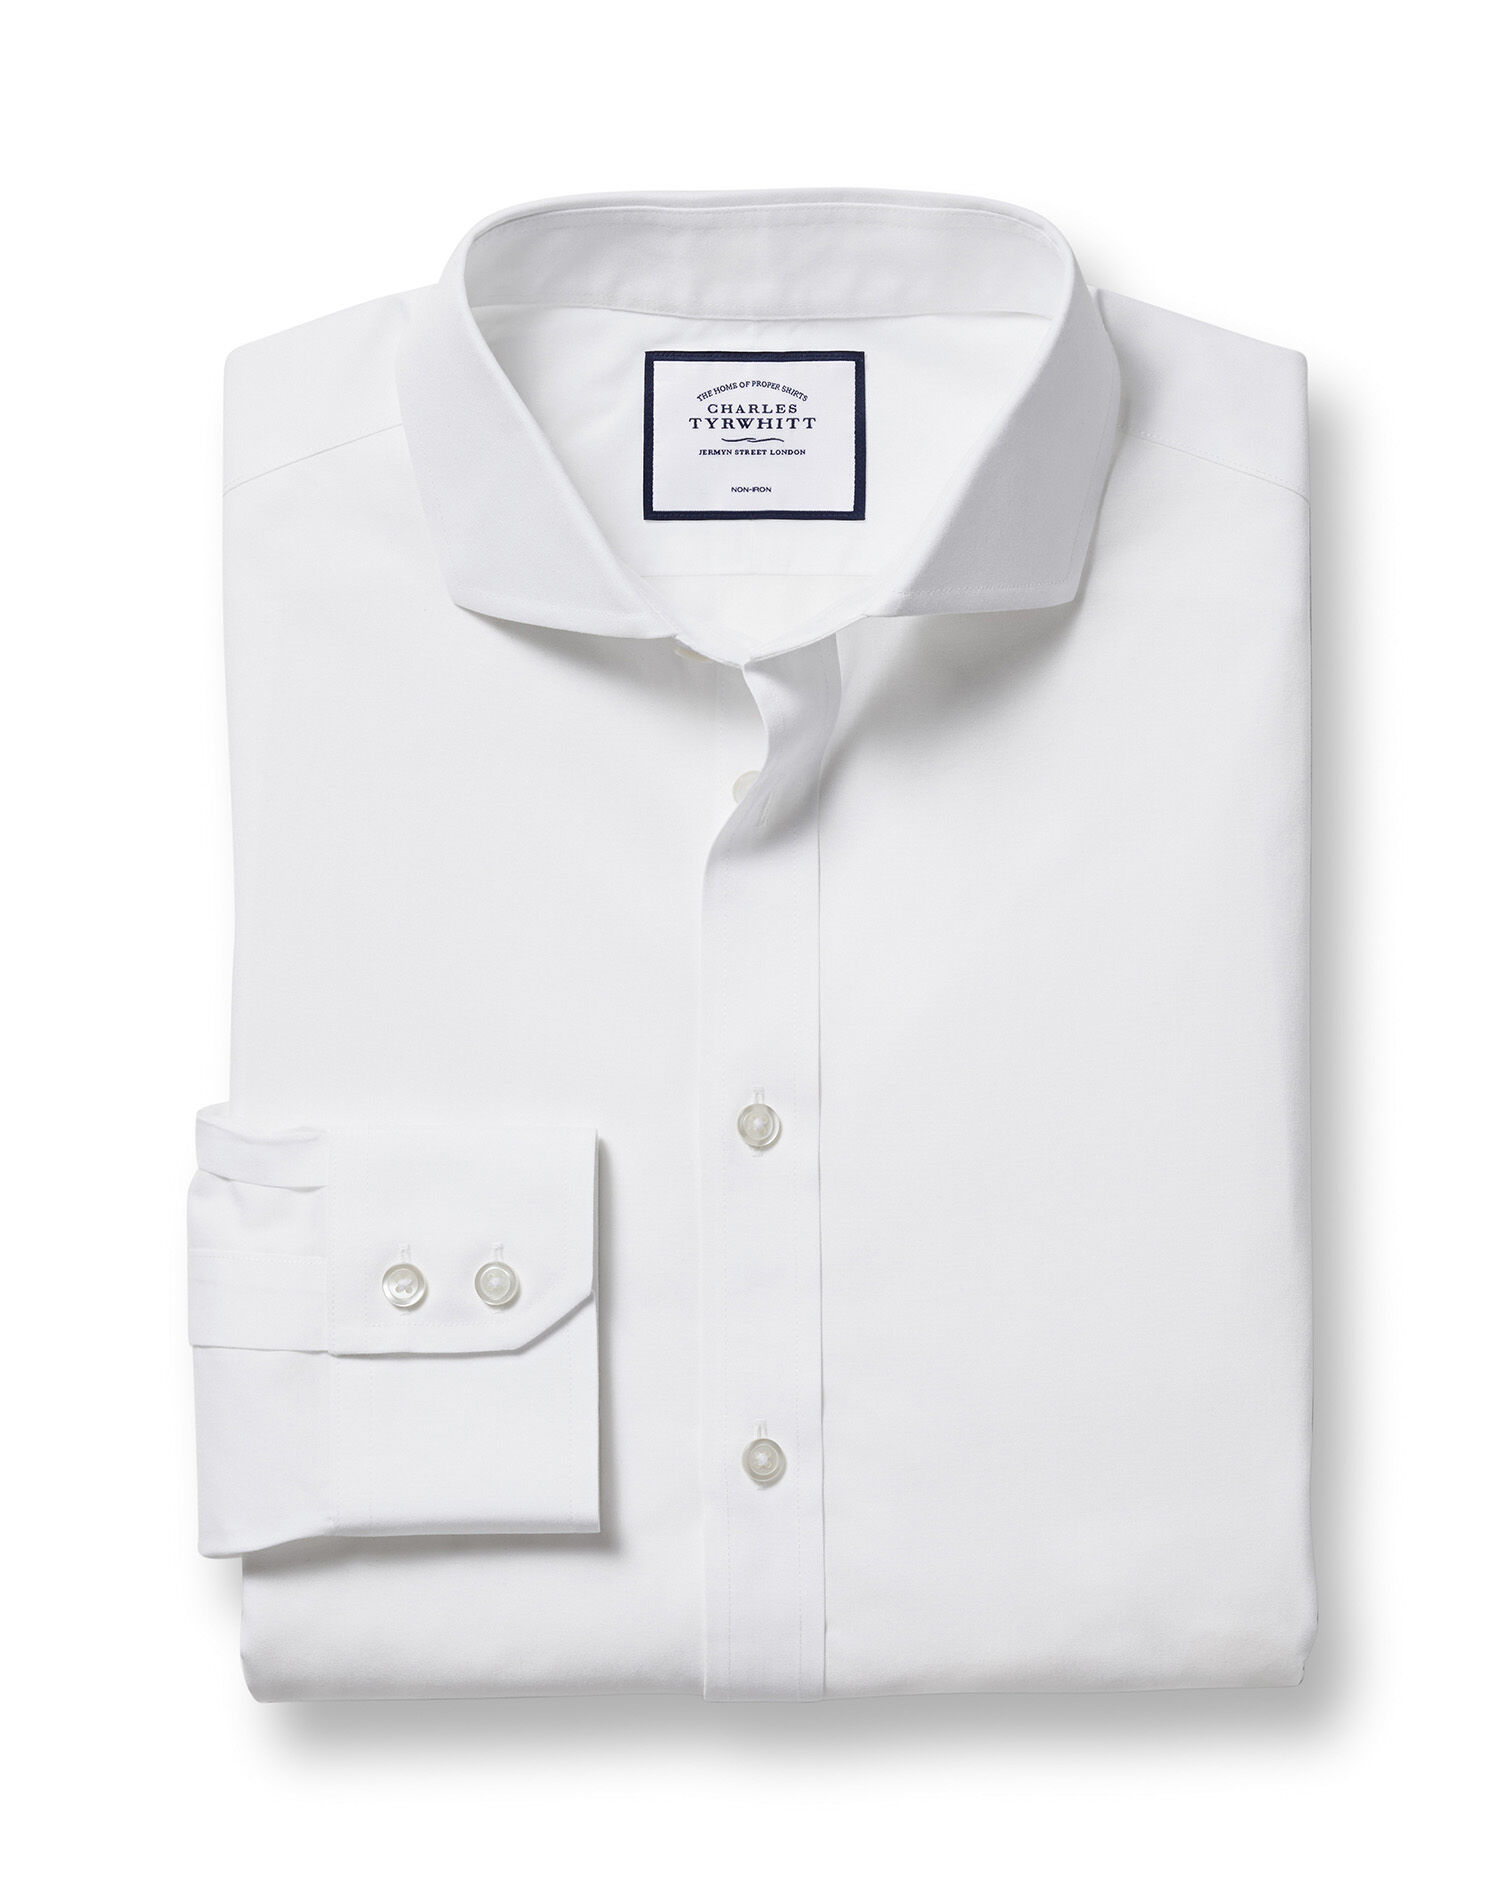 Slim Fit Cutaway Collar Non-Iron Poplin White Cotton Formal Shirt Single Cuff Size 16.5/35 by Charle